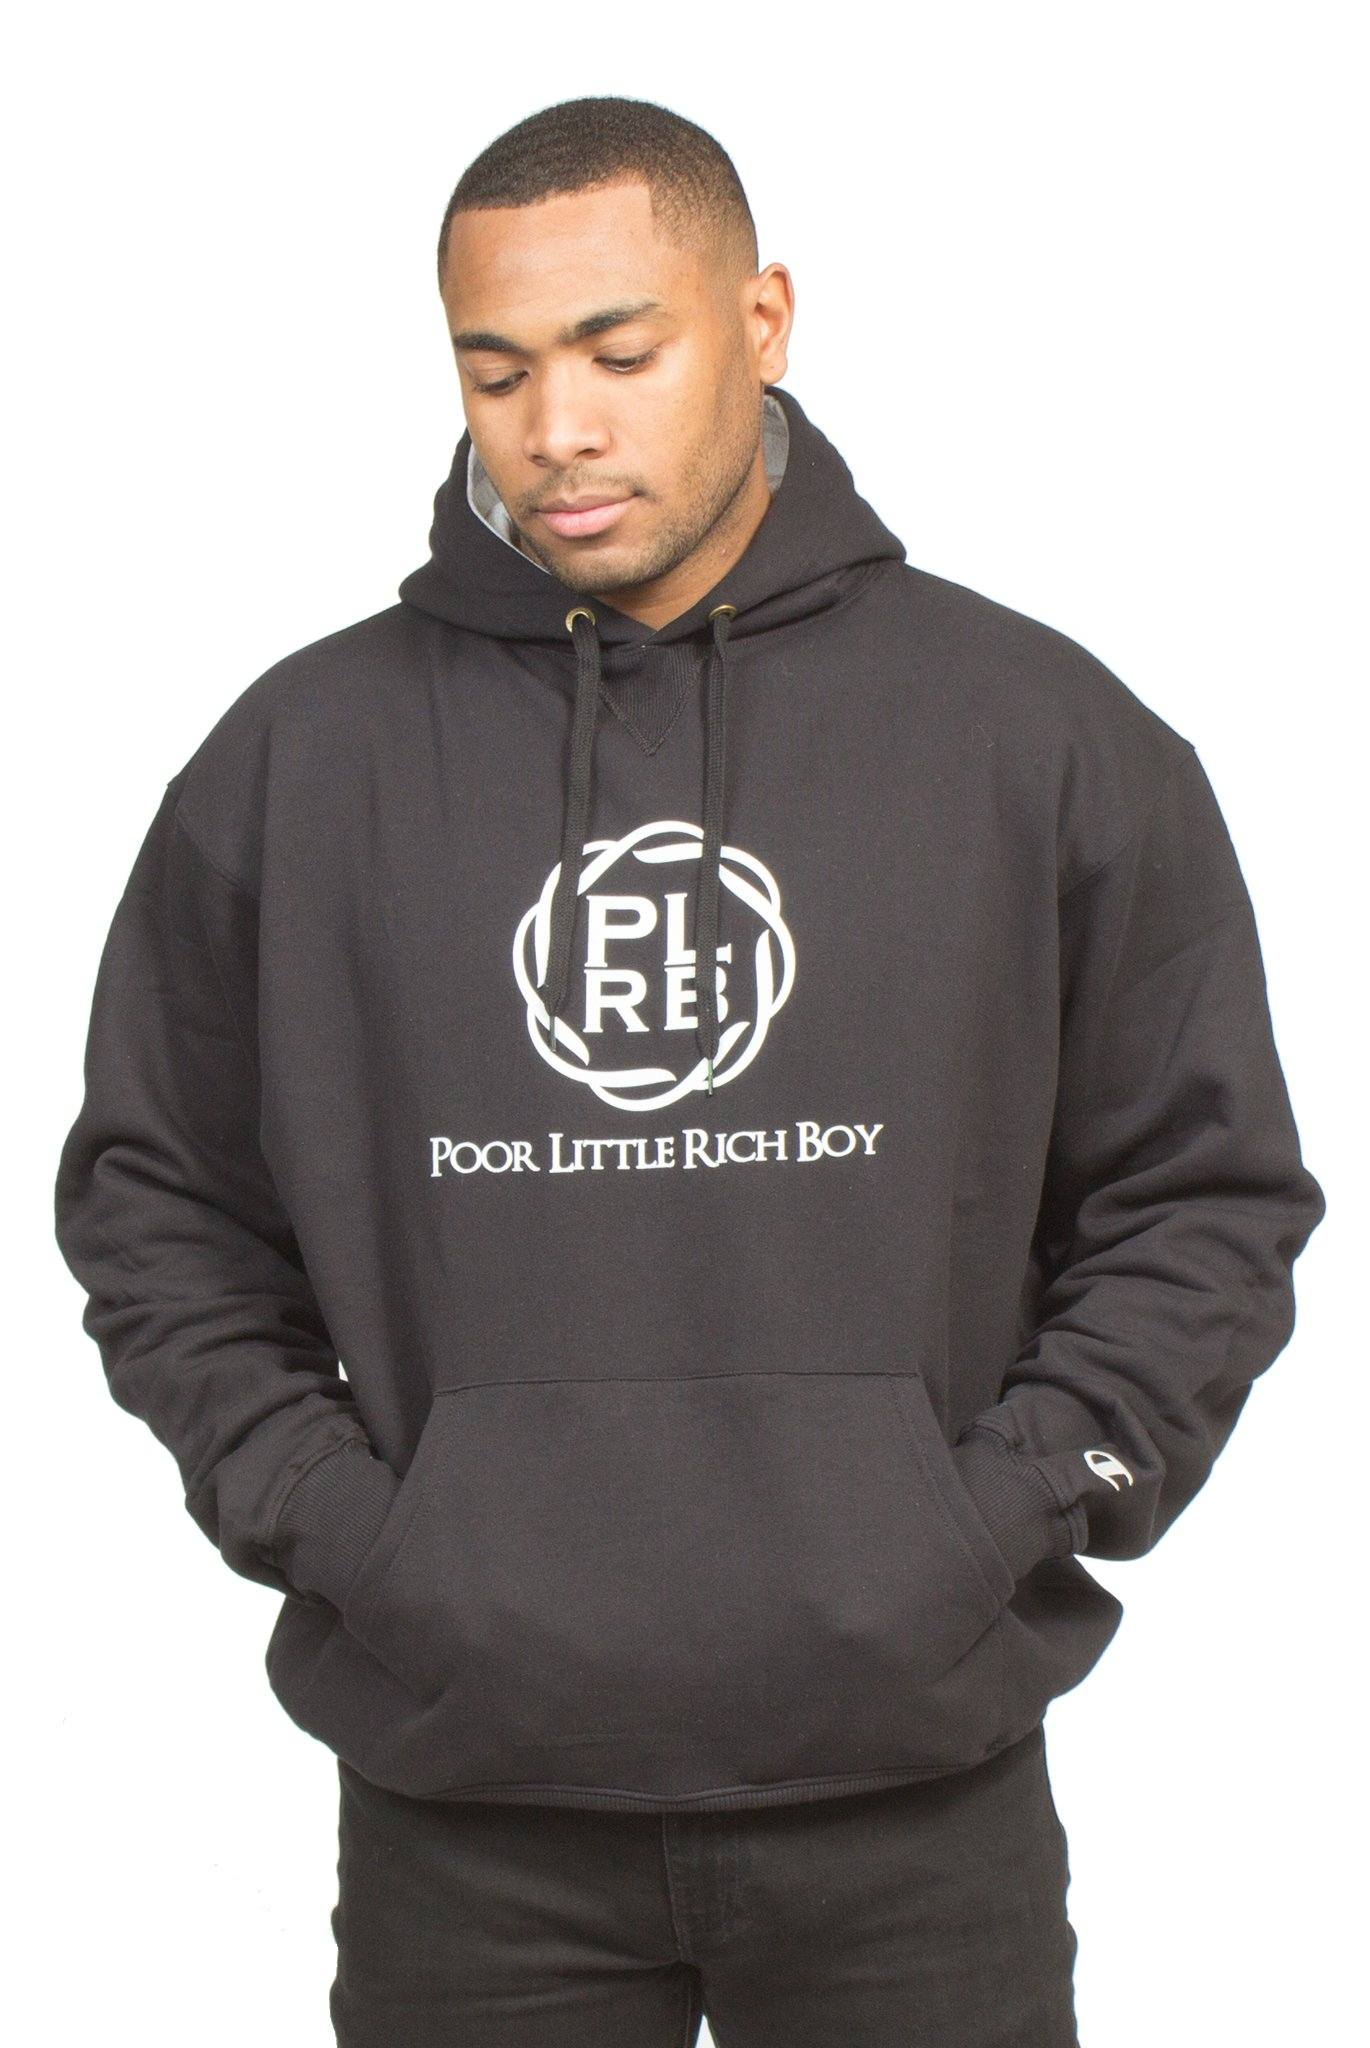 CHAMPION PLRB LOGO OVERSIZED HOODIE IN BLACK | Poor Little Rich Boy Clothing